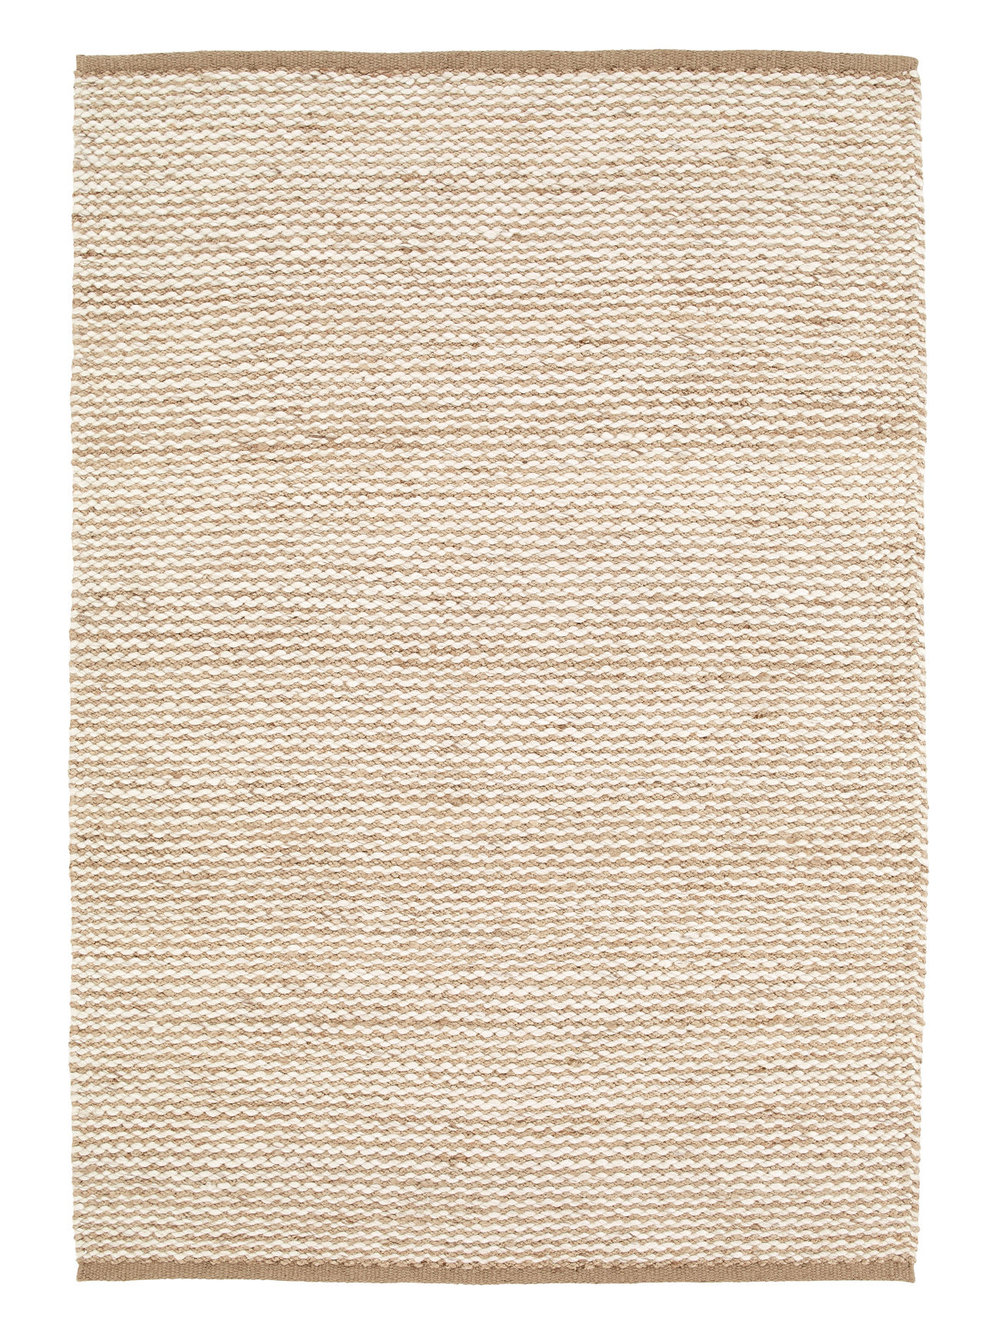 Kalahari Weave Rug by Armadillo & Co